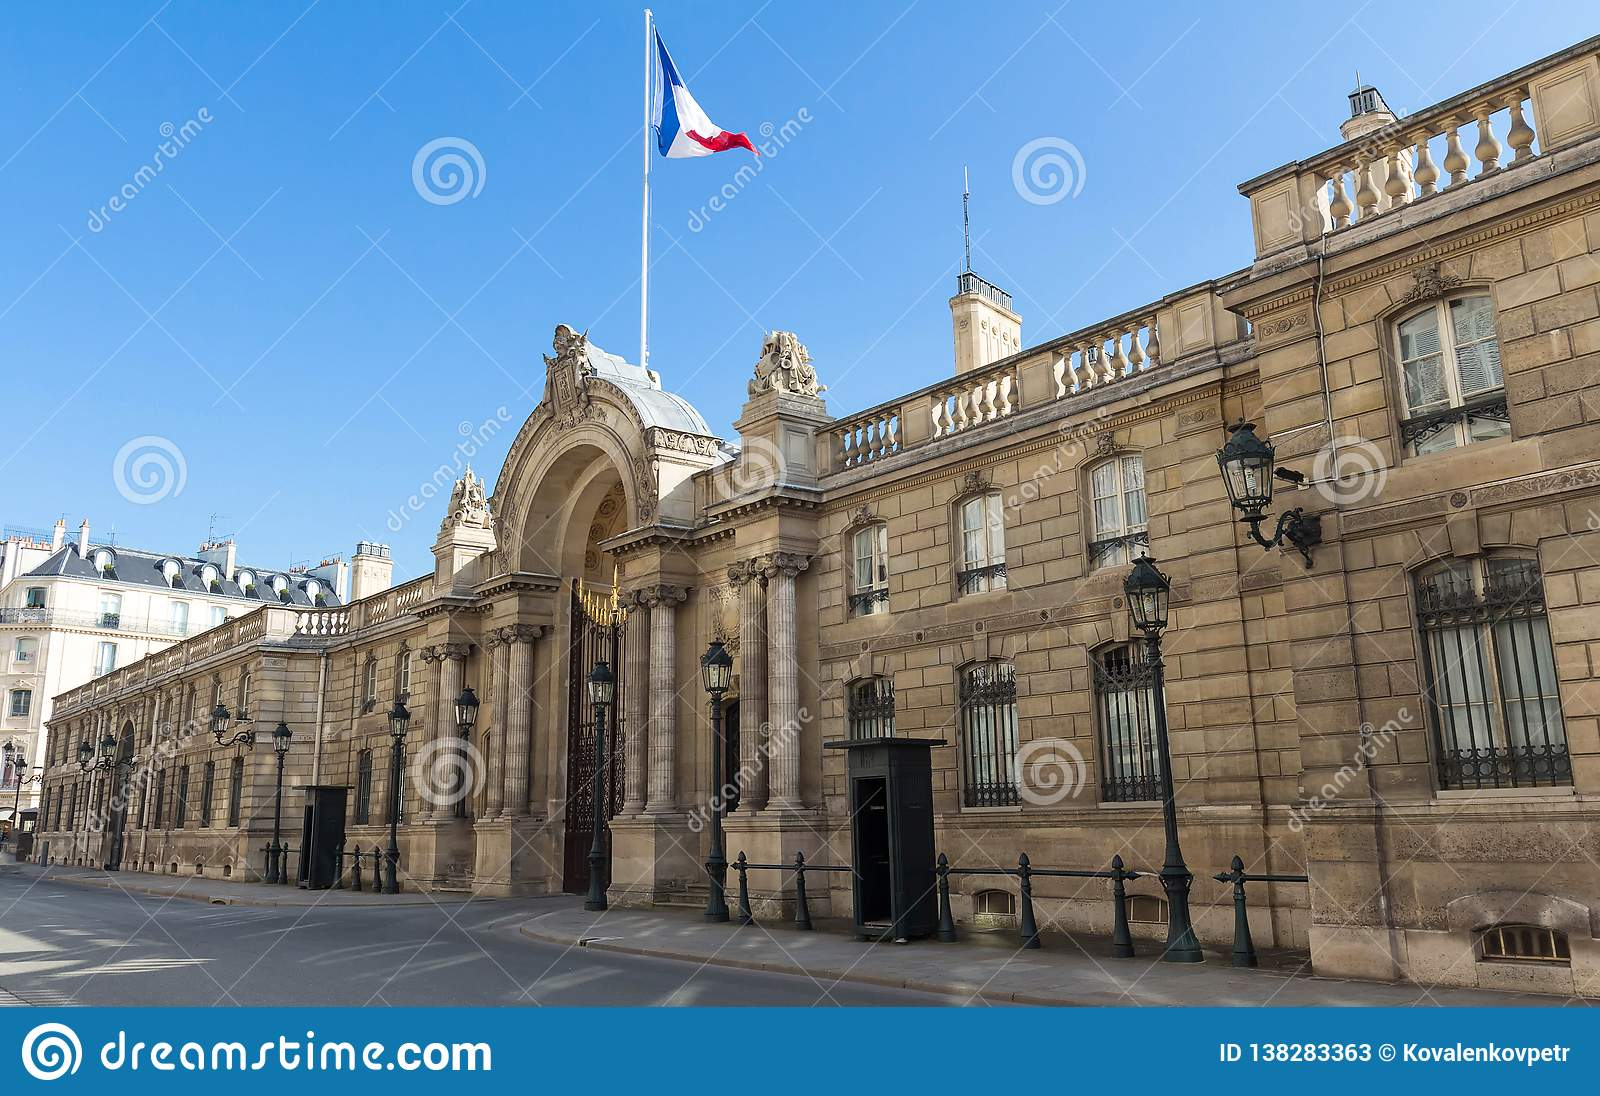 View of entrance gate of the Elysee Palace from the Rue du Faubourg Saint-Honore. Elysee Palace - official residence of